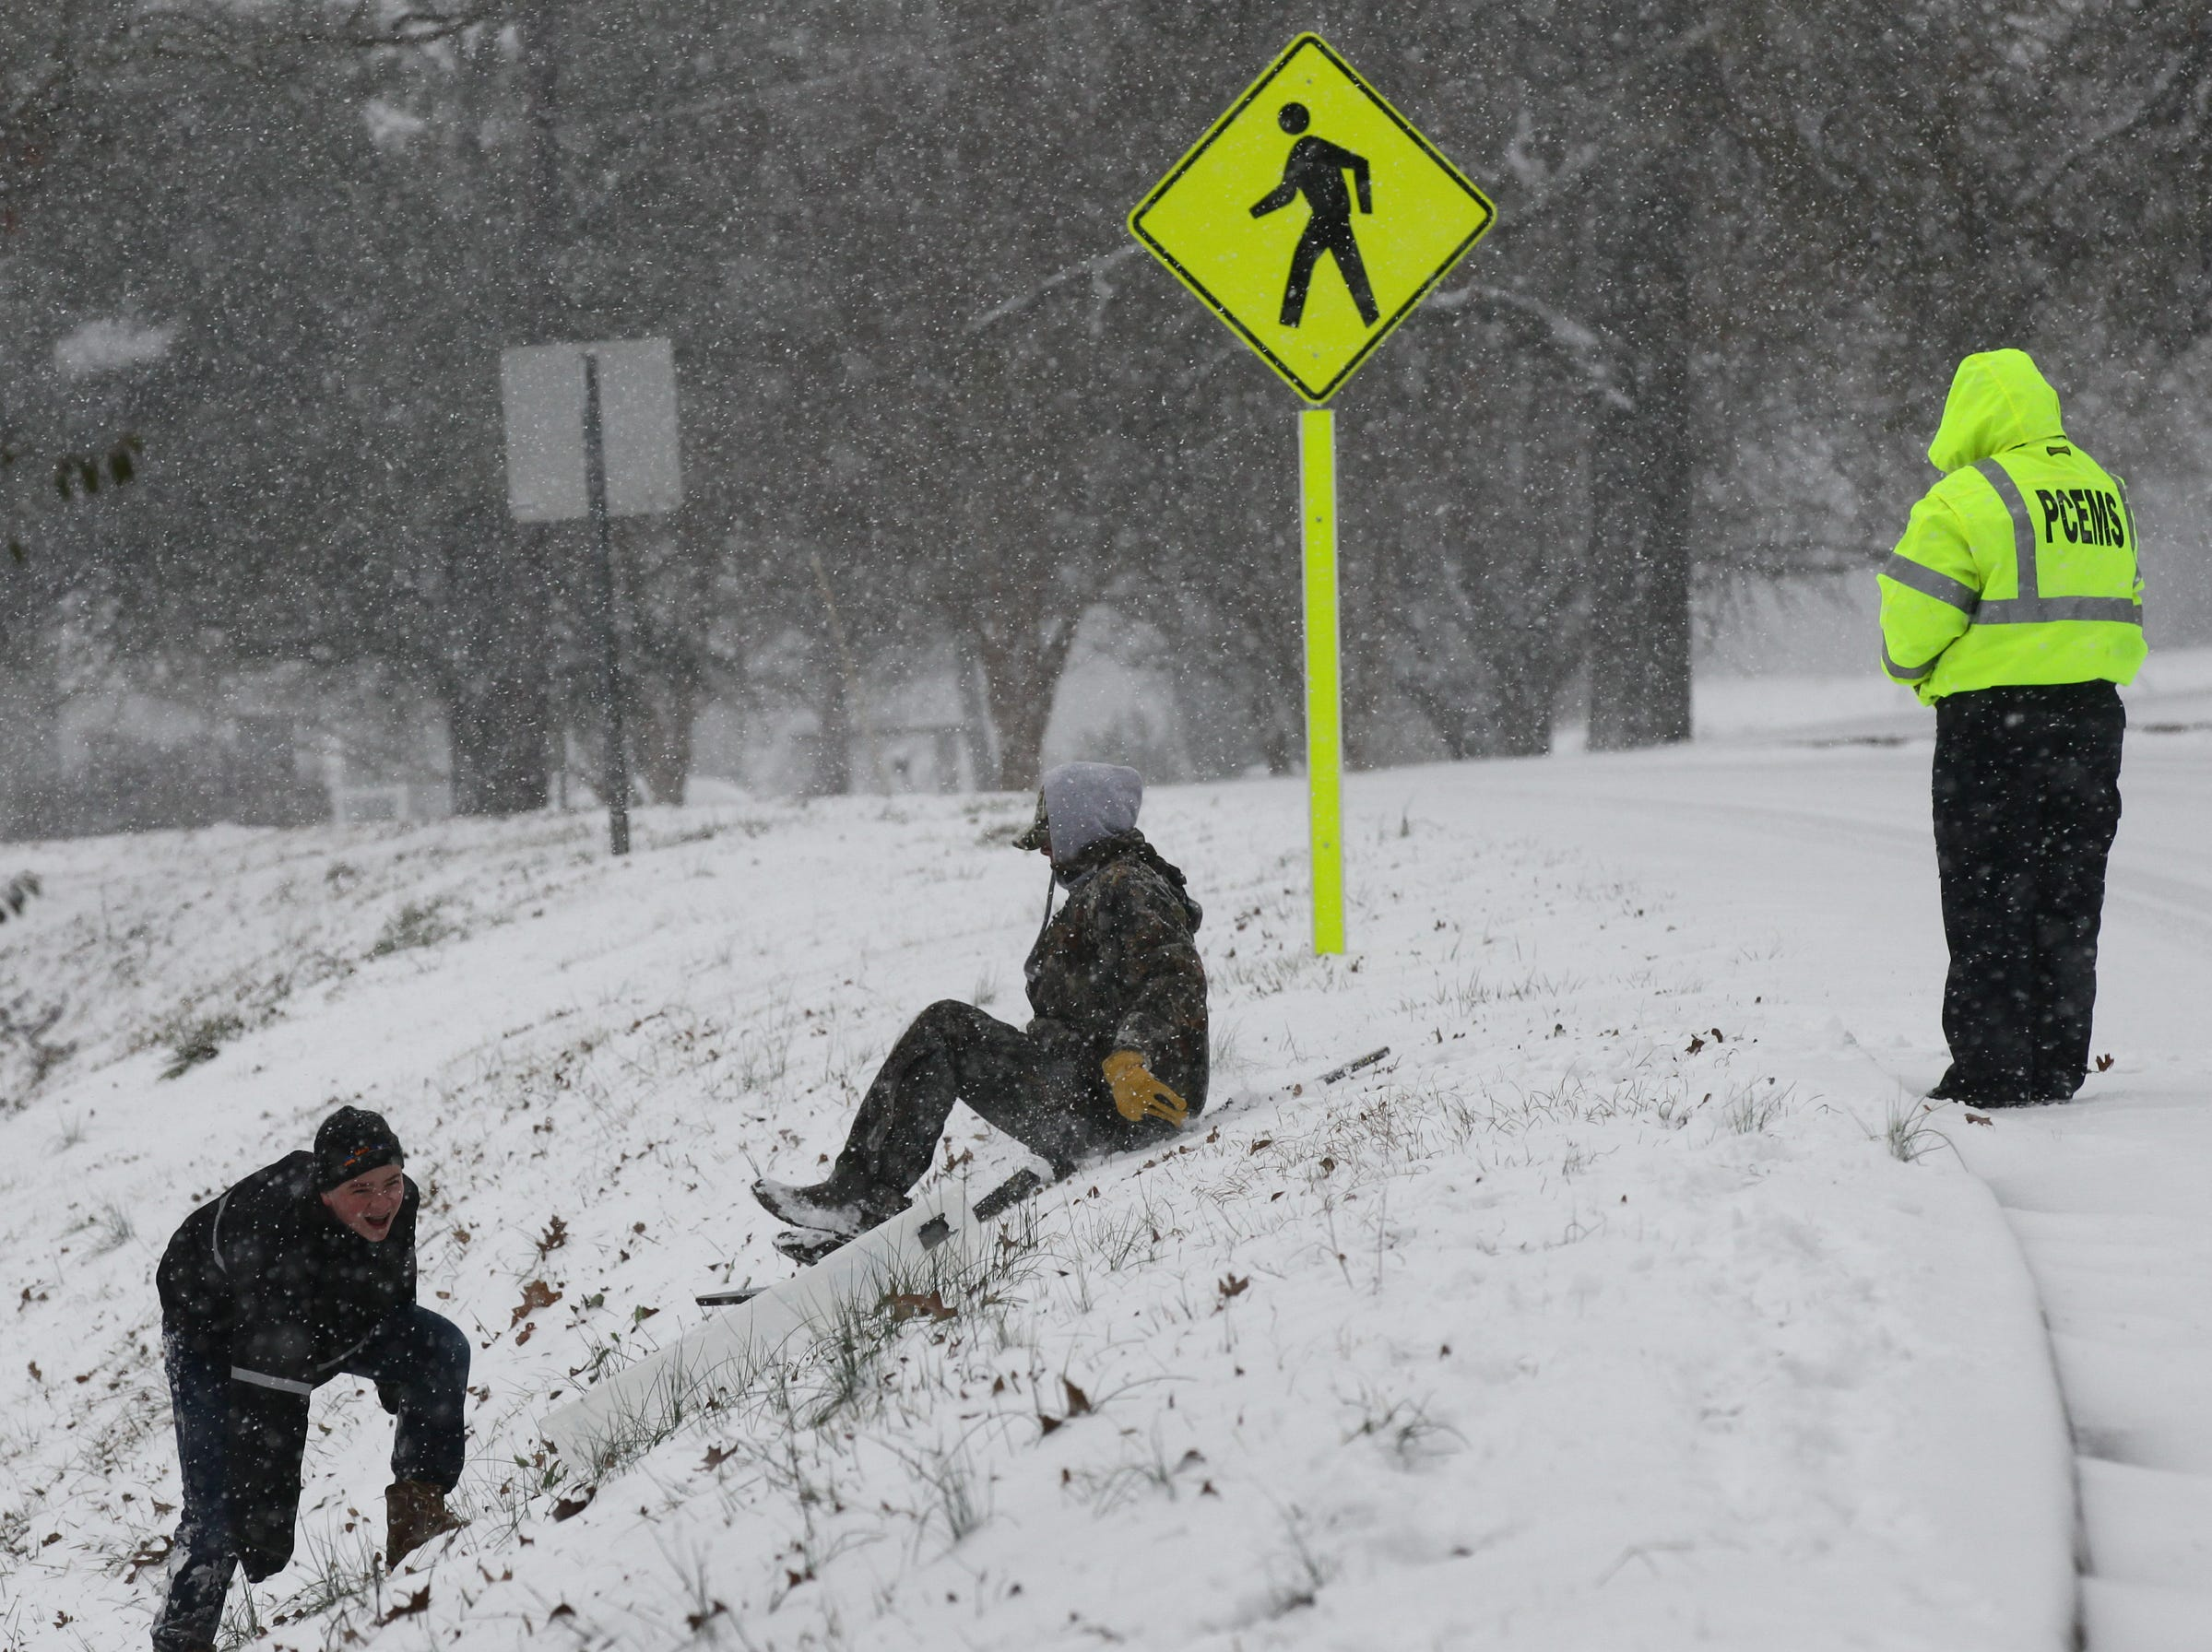 Residents slide down an embankment on cardboard during the first snow of 2014.